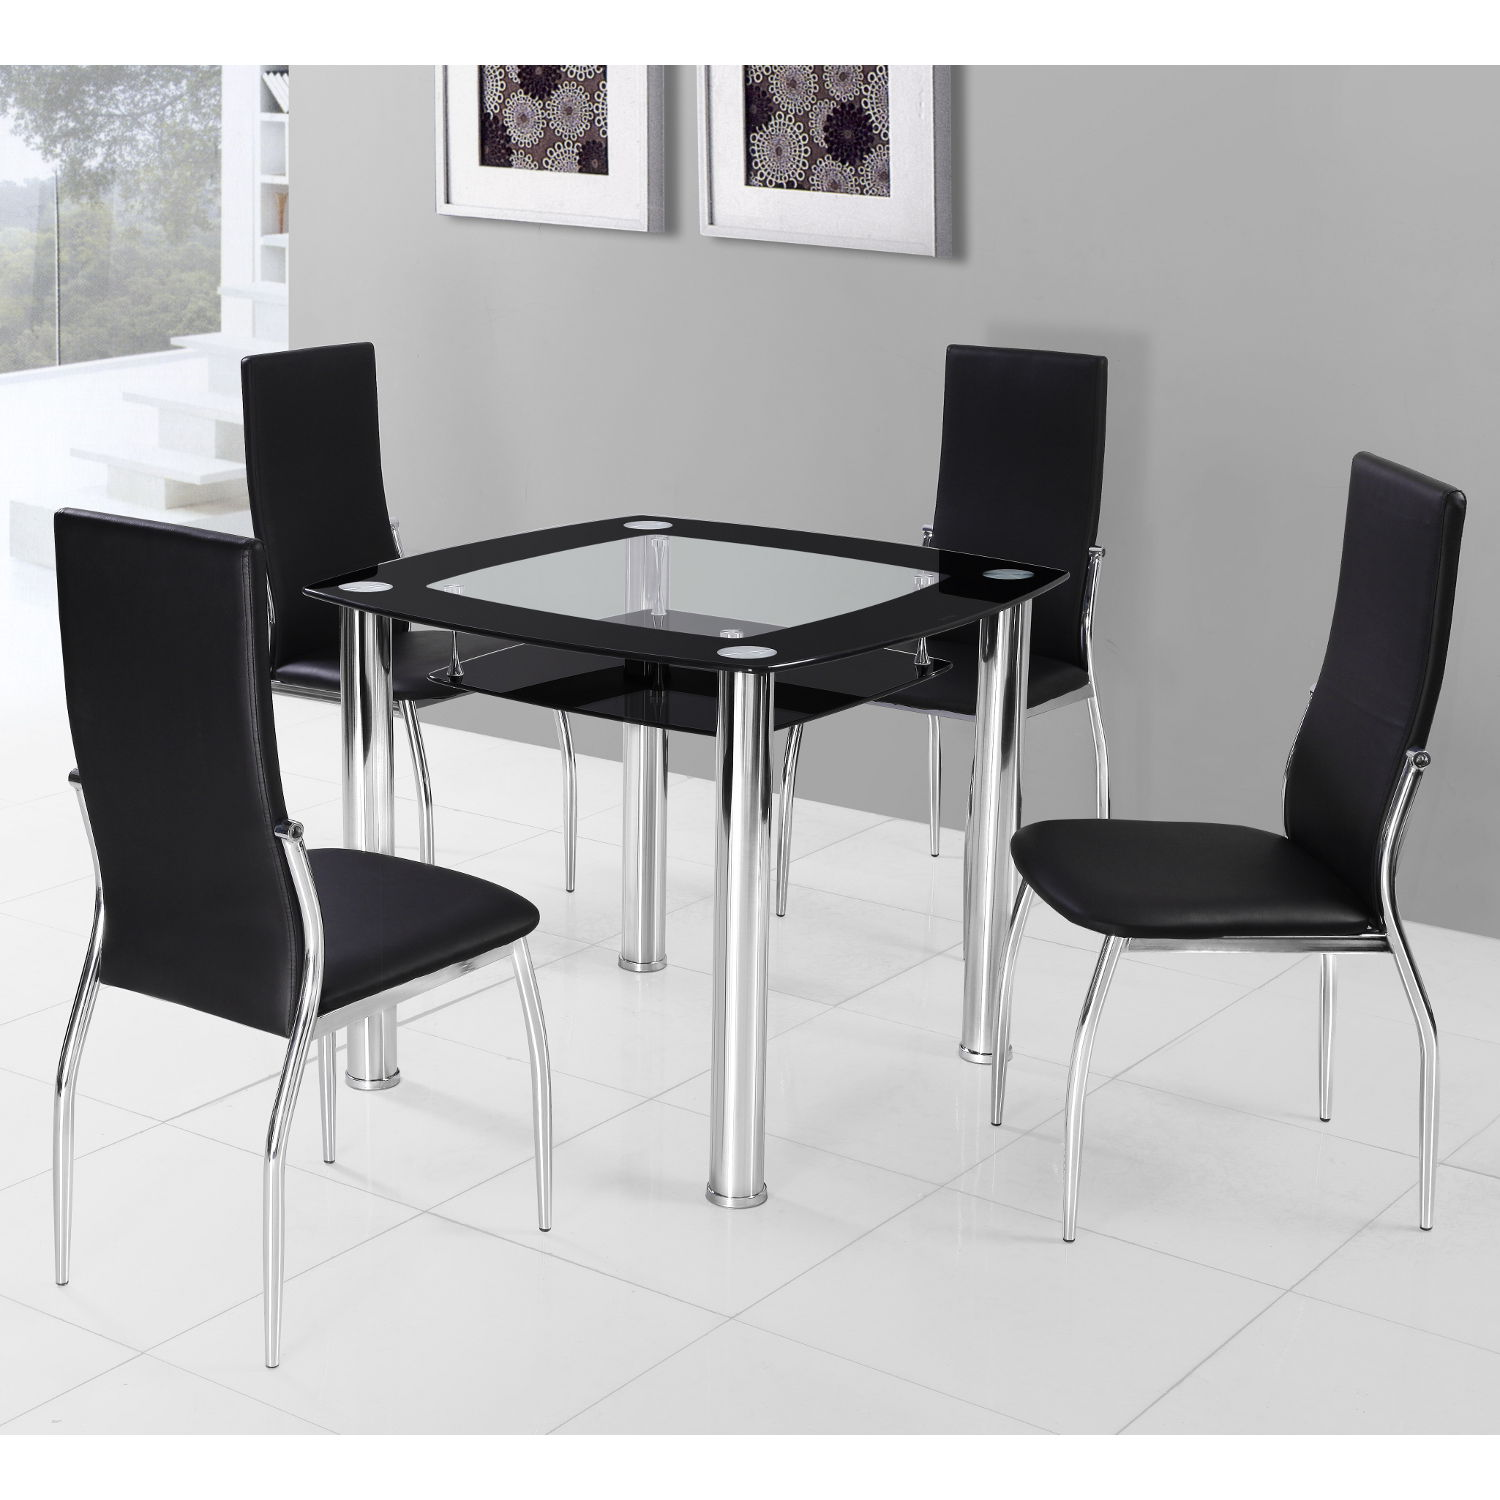 Black Steel Dining Room 4 Chairs With Square Gl Table Design